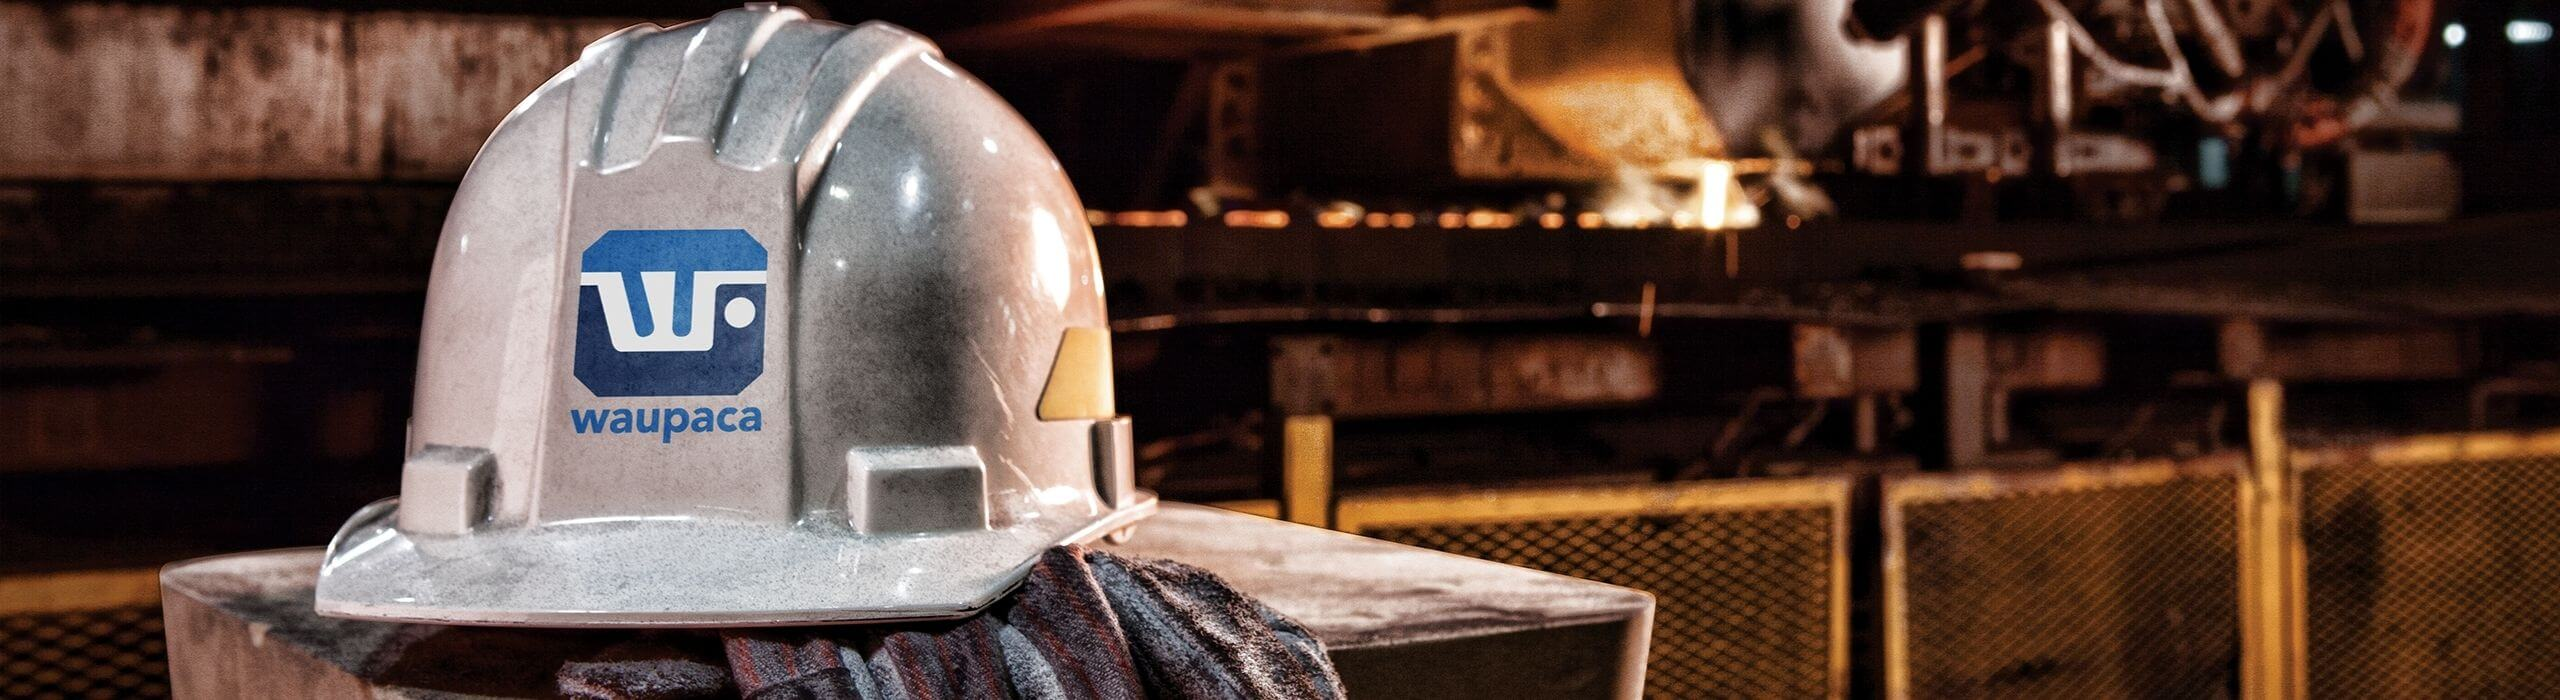 Waupaca Foundry hard hat